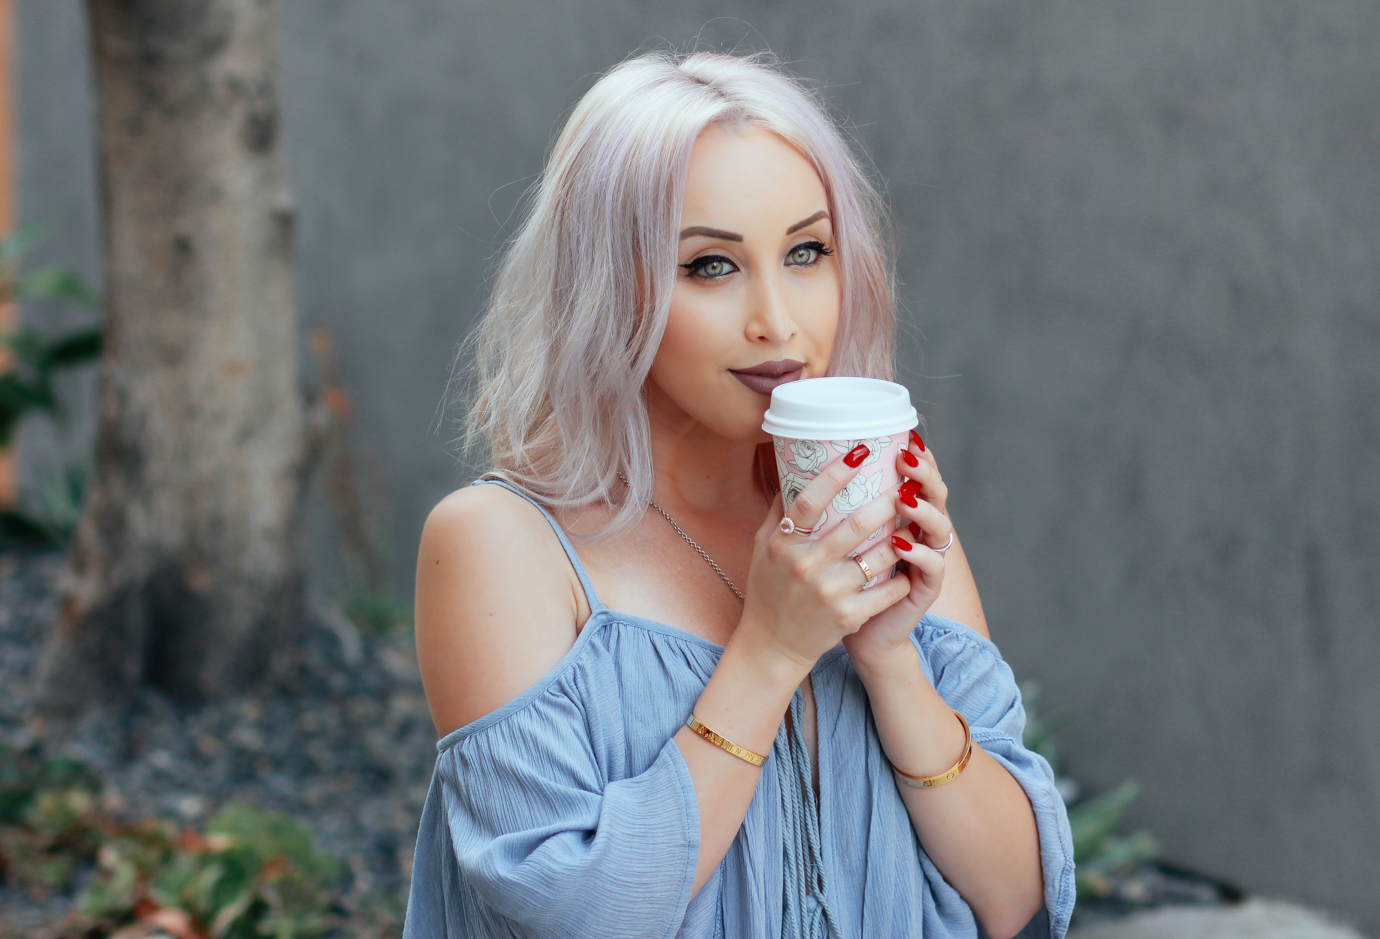 Blondie in the City | Light Blue Tassel Top @windsorstore | Casual Street Style | Alfred Tea Room in West Hollywood | Lip Color: Trap by @ColourPopCo